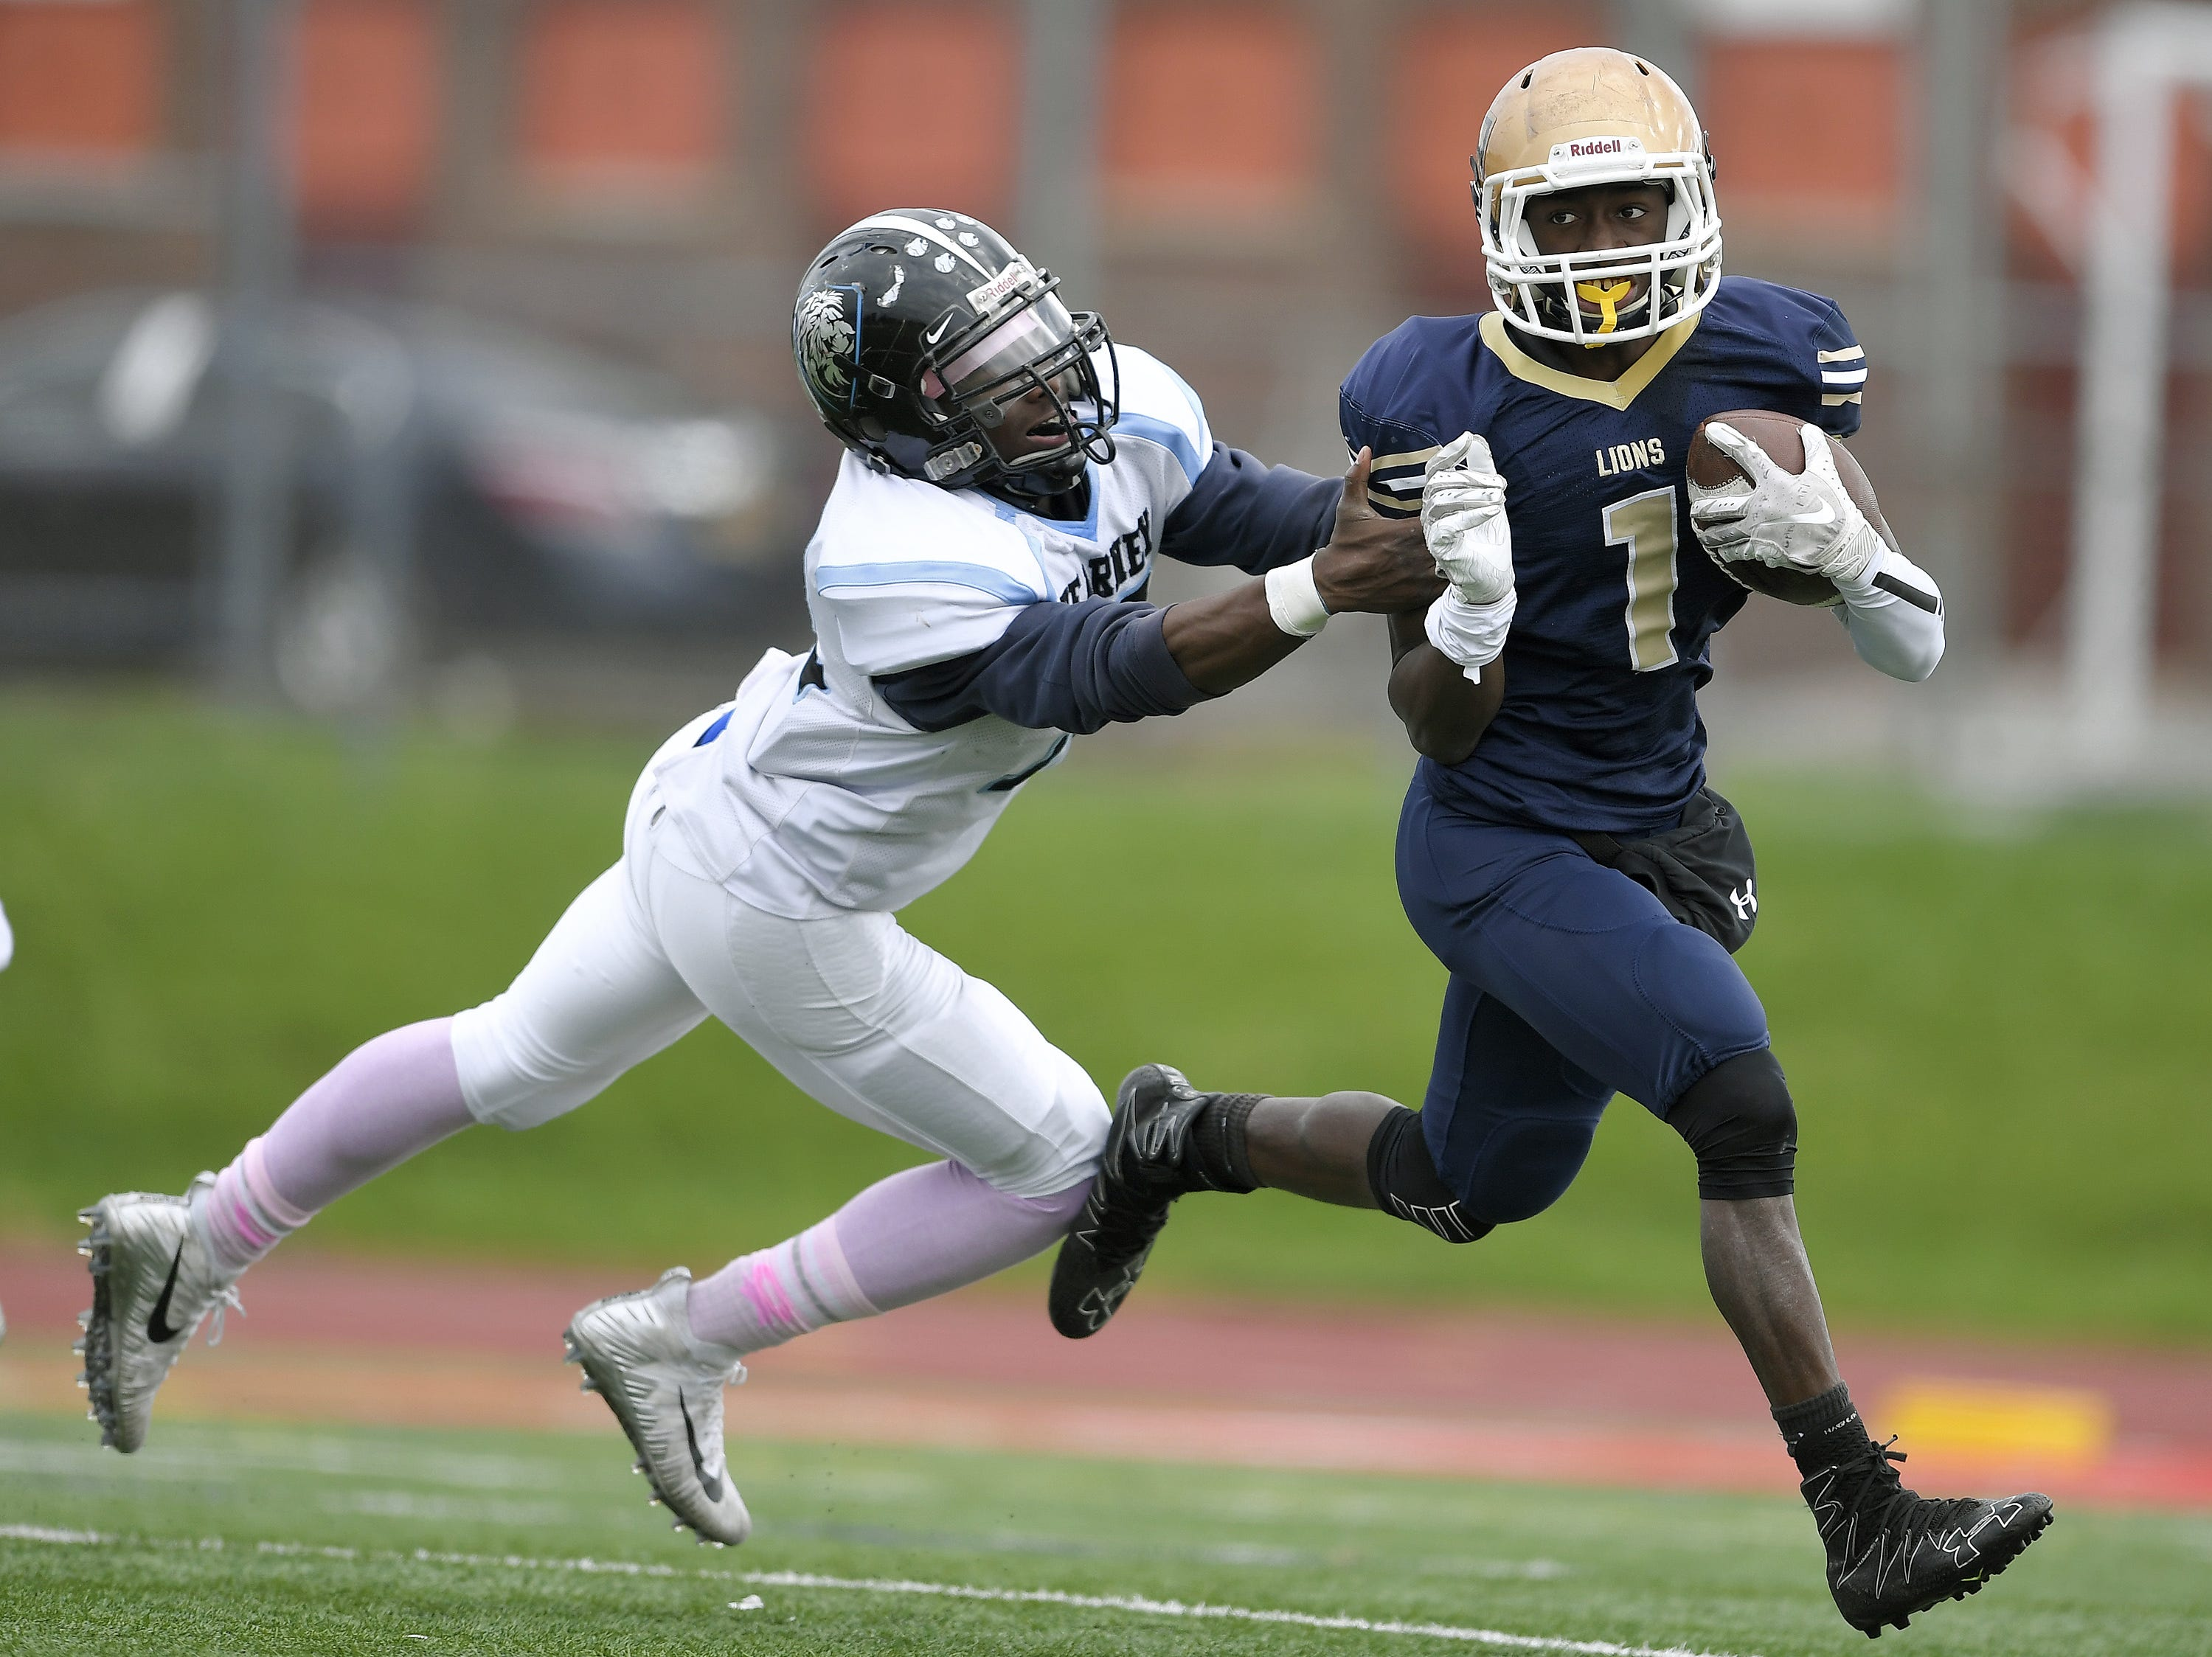 Leadership's Maurice Glenn, right, avoids a tackle by Bishop Kearney's Jawann Perry during a regular season game played at Franklin High School, Saturday, Oct. 13, 2018. Leadership Academy beat Bishop Kearney/Rochester Prep 12-6.